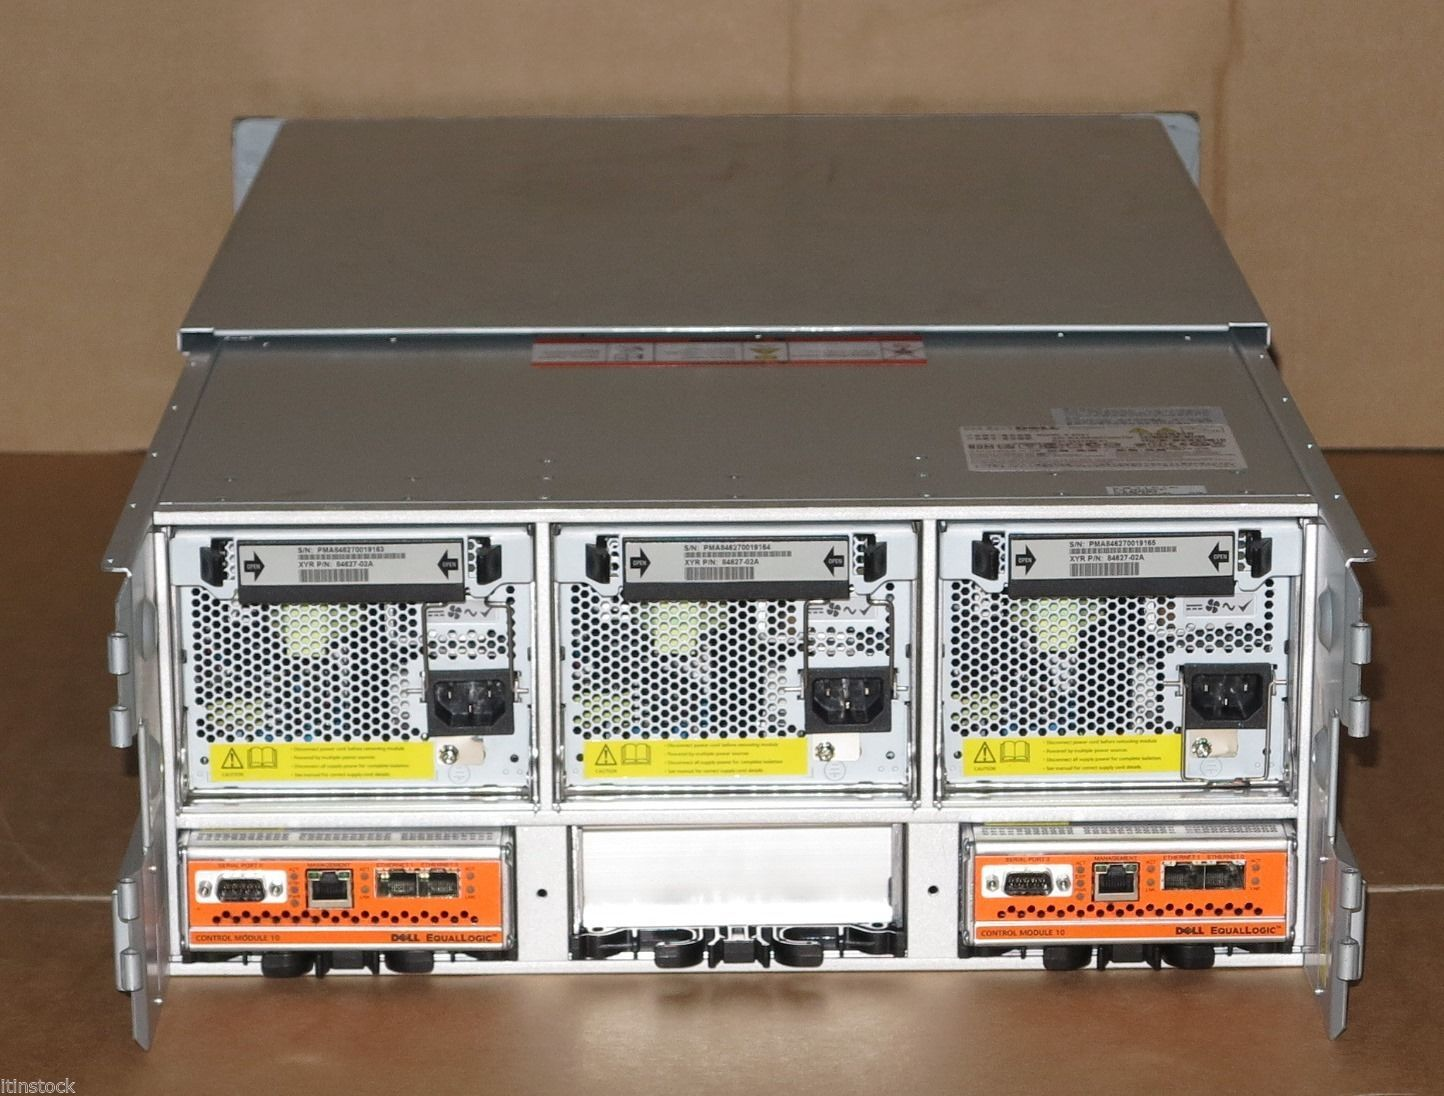 Dell Equallogic Ps6510e Virtualized Iscsi San Storage